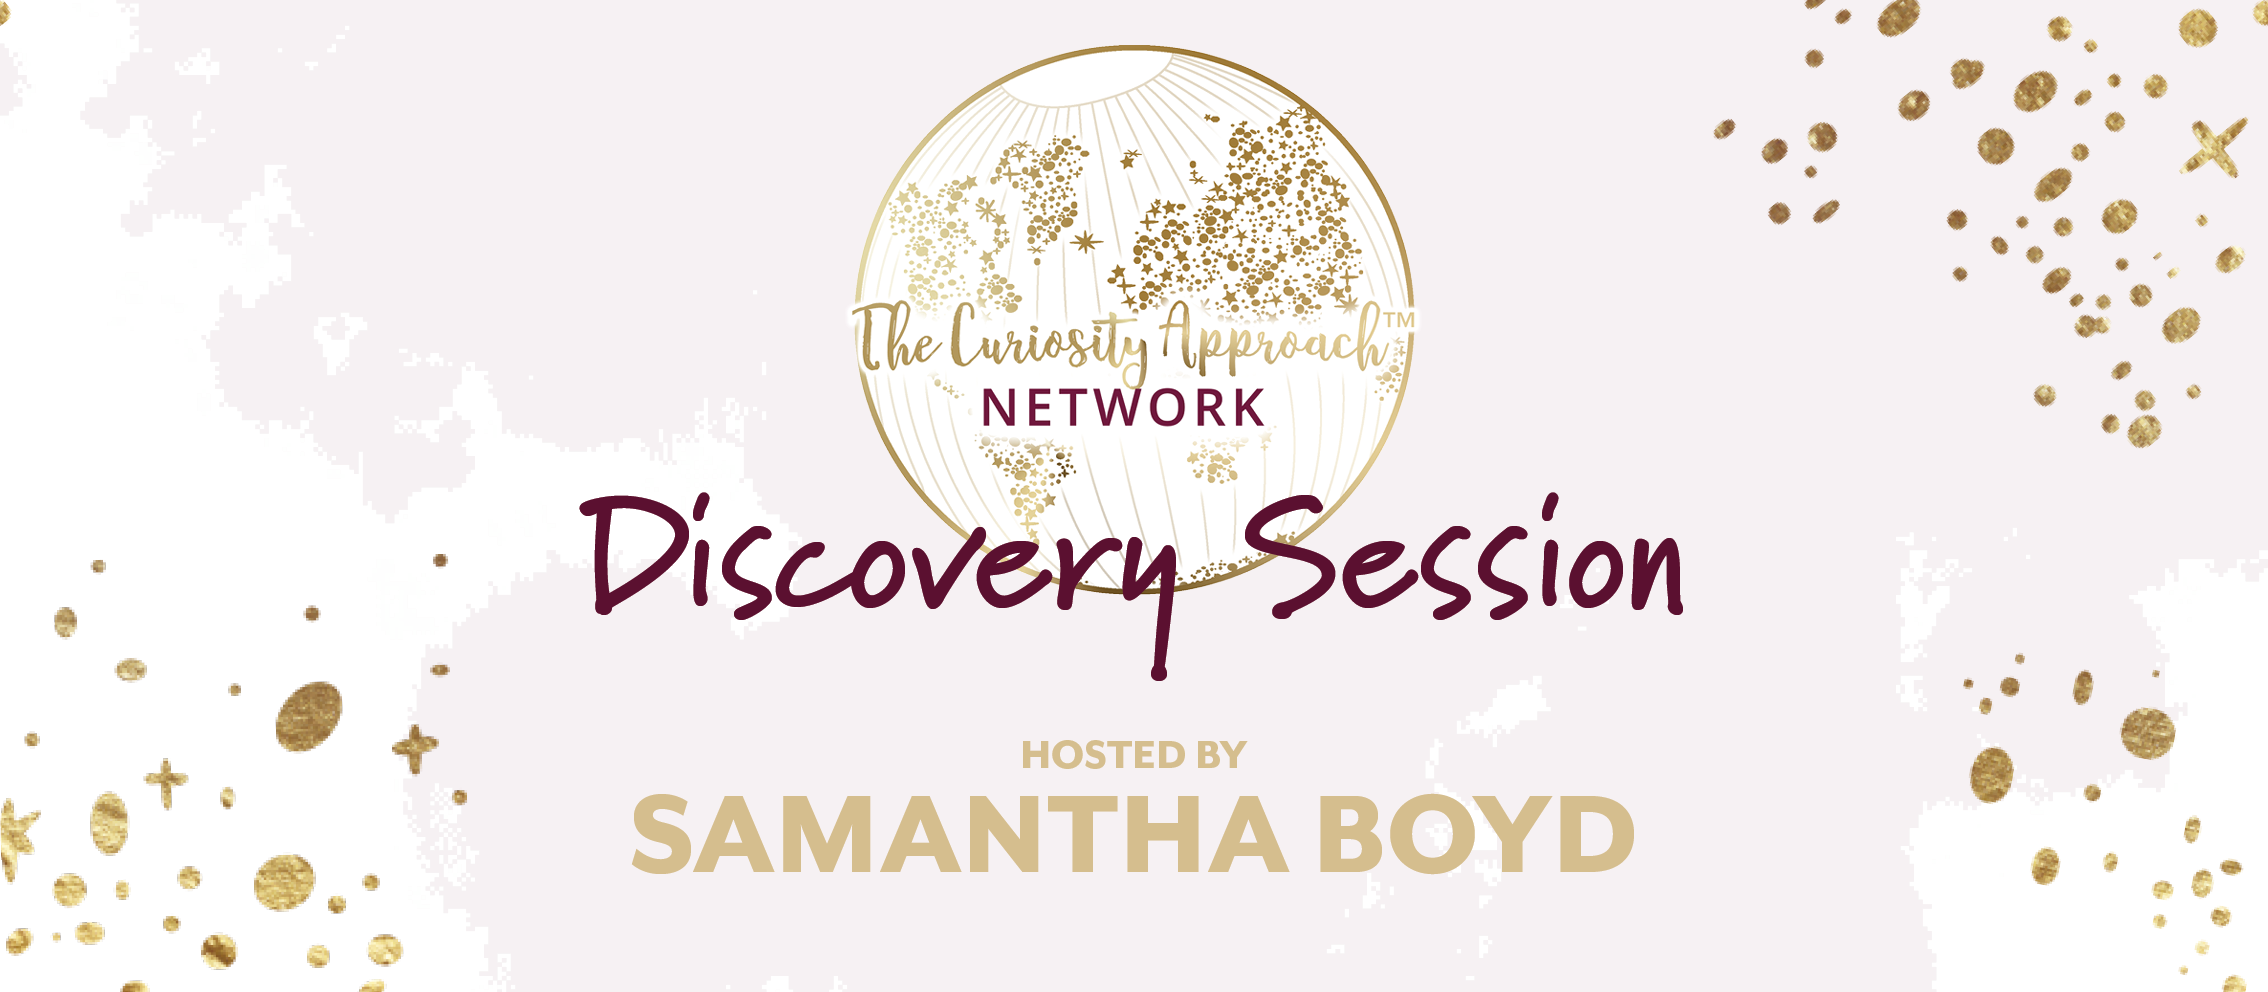 West Sussex Network - Discover Hygge - 24/07/2021